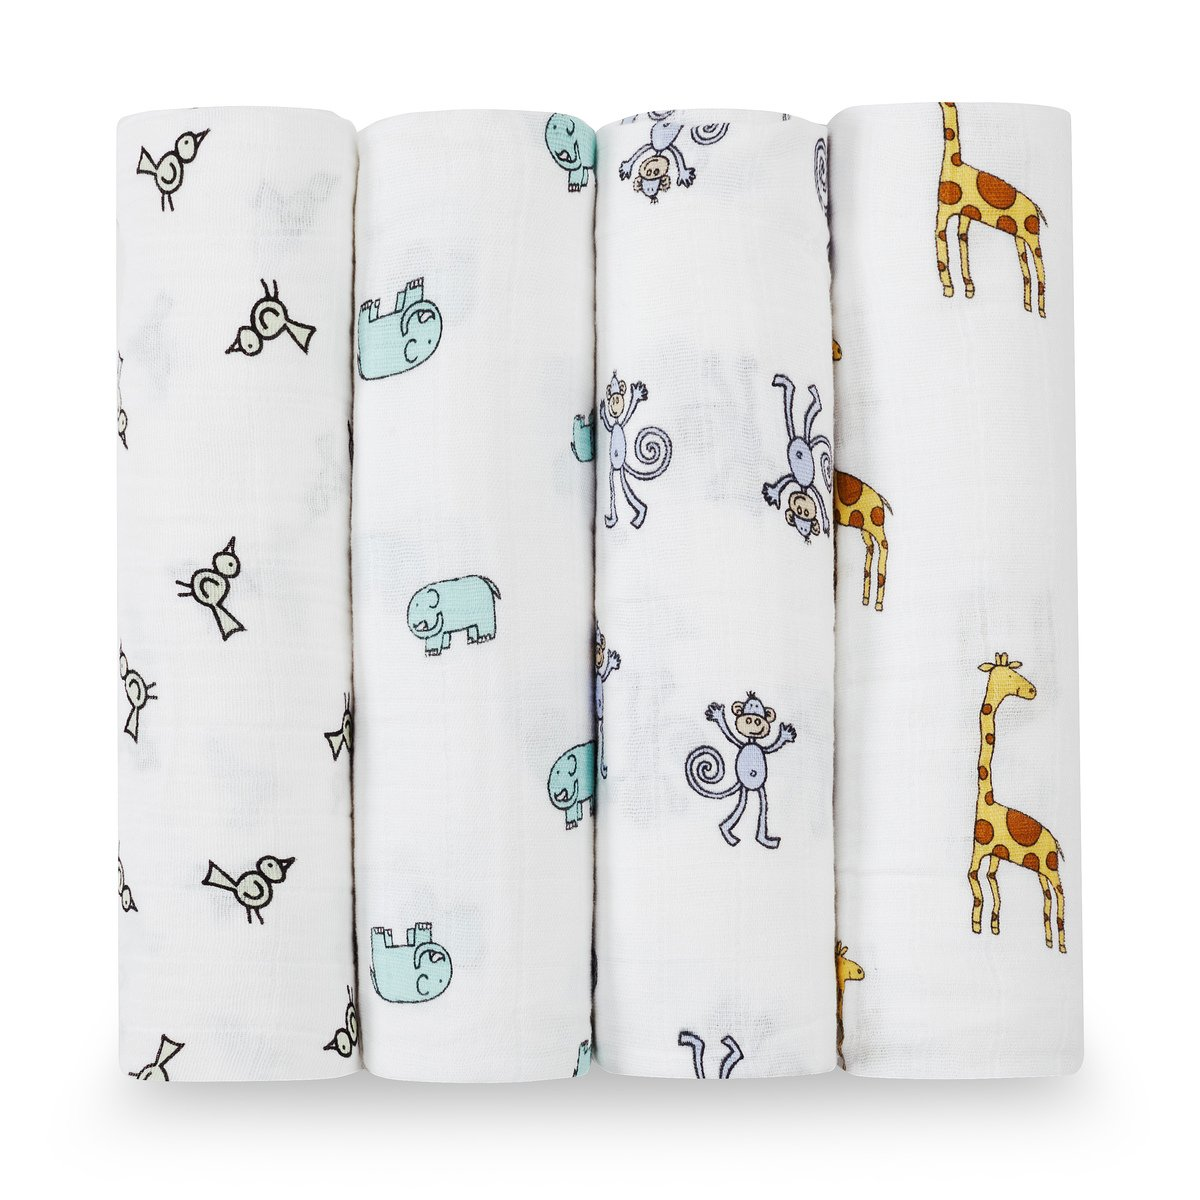 aden + anais Classic Swaddle Baby Blanket, 100% Cotton Muslin, Large 47 X 47 inch, 4 pack, Jungle Jam